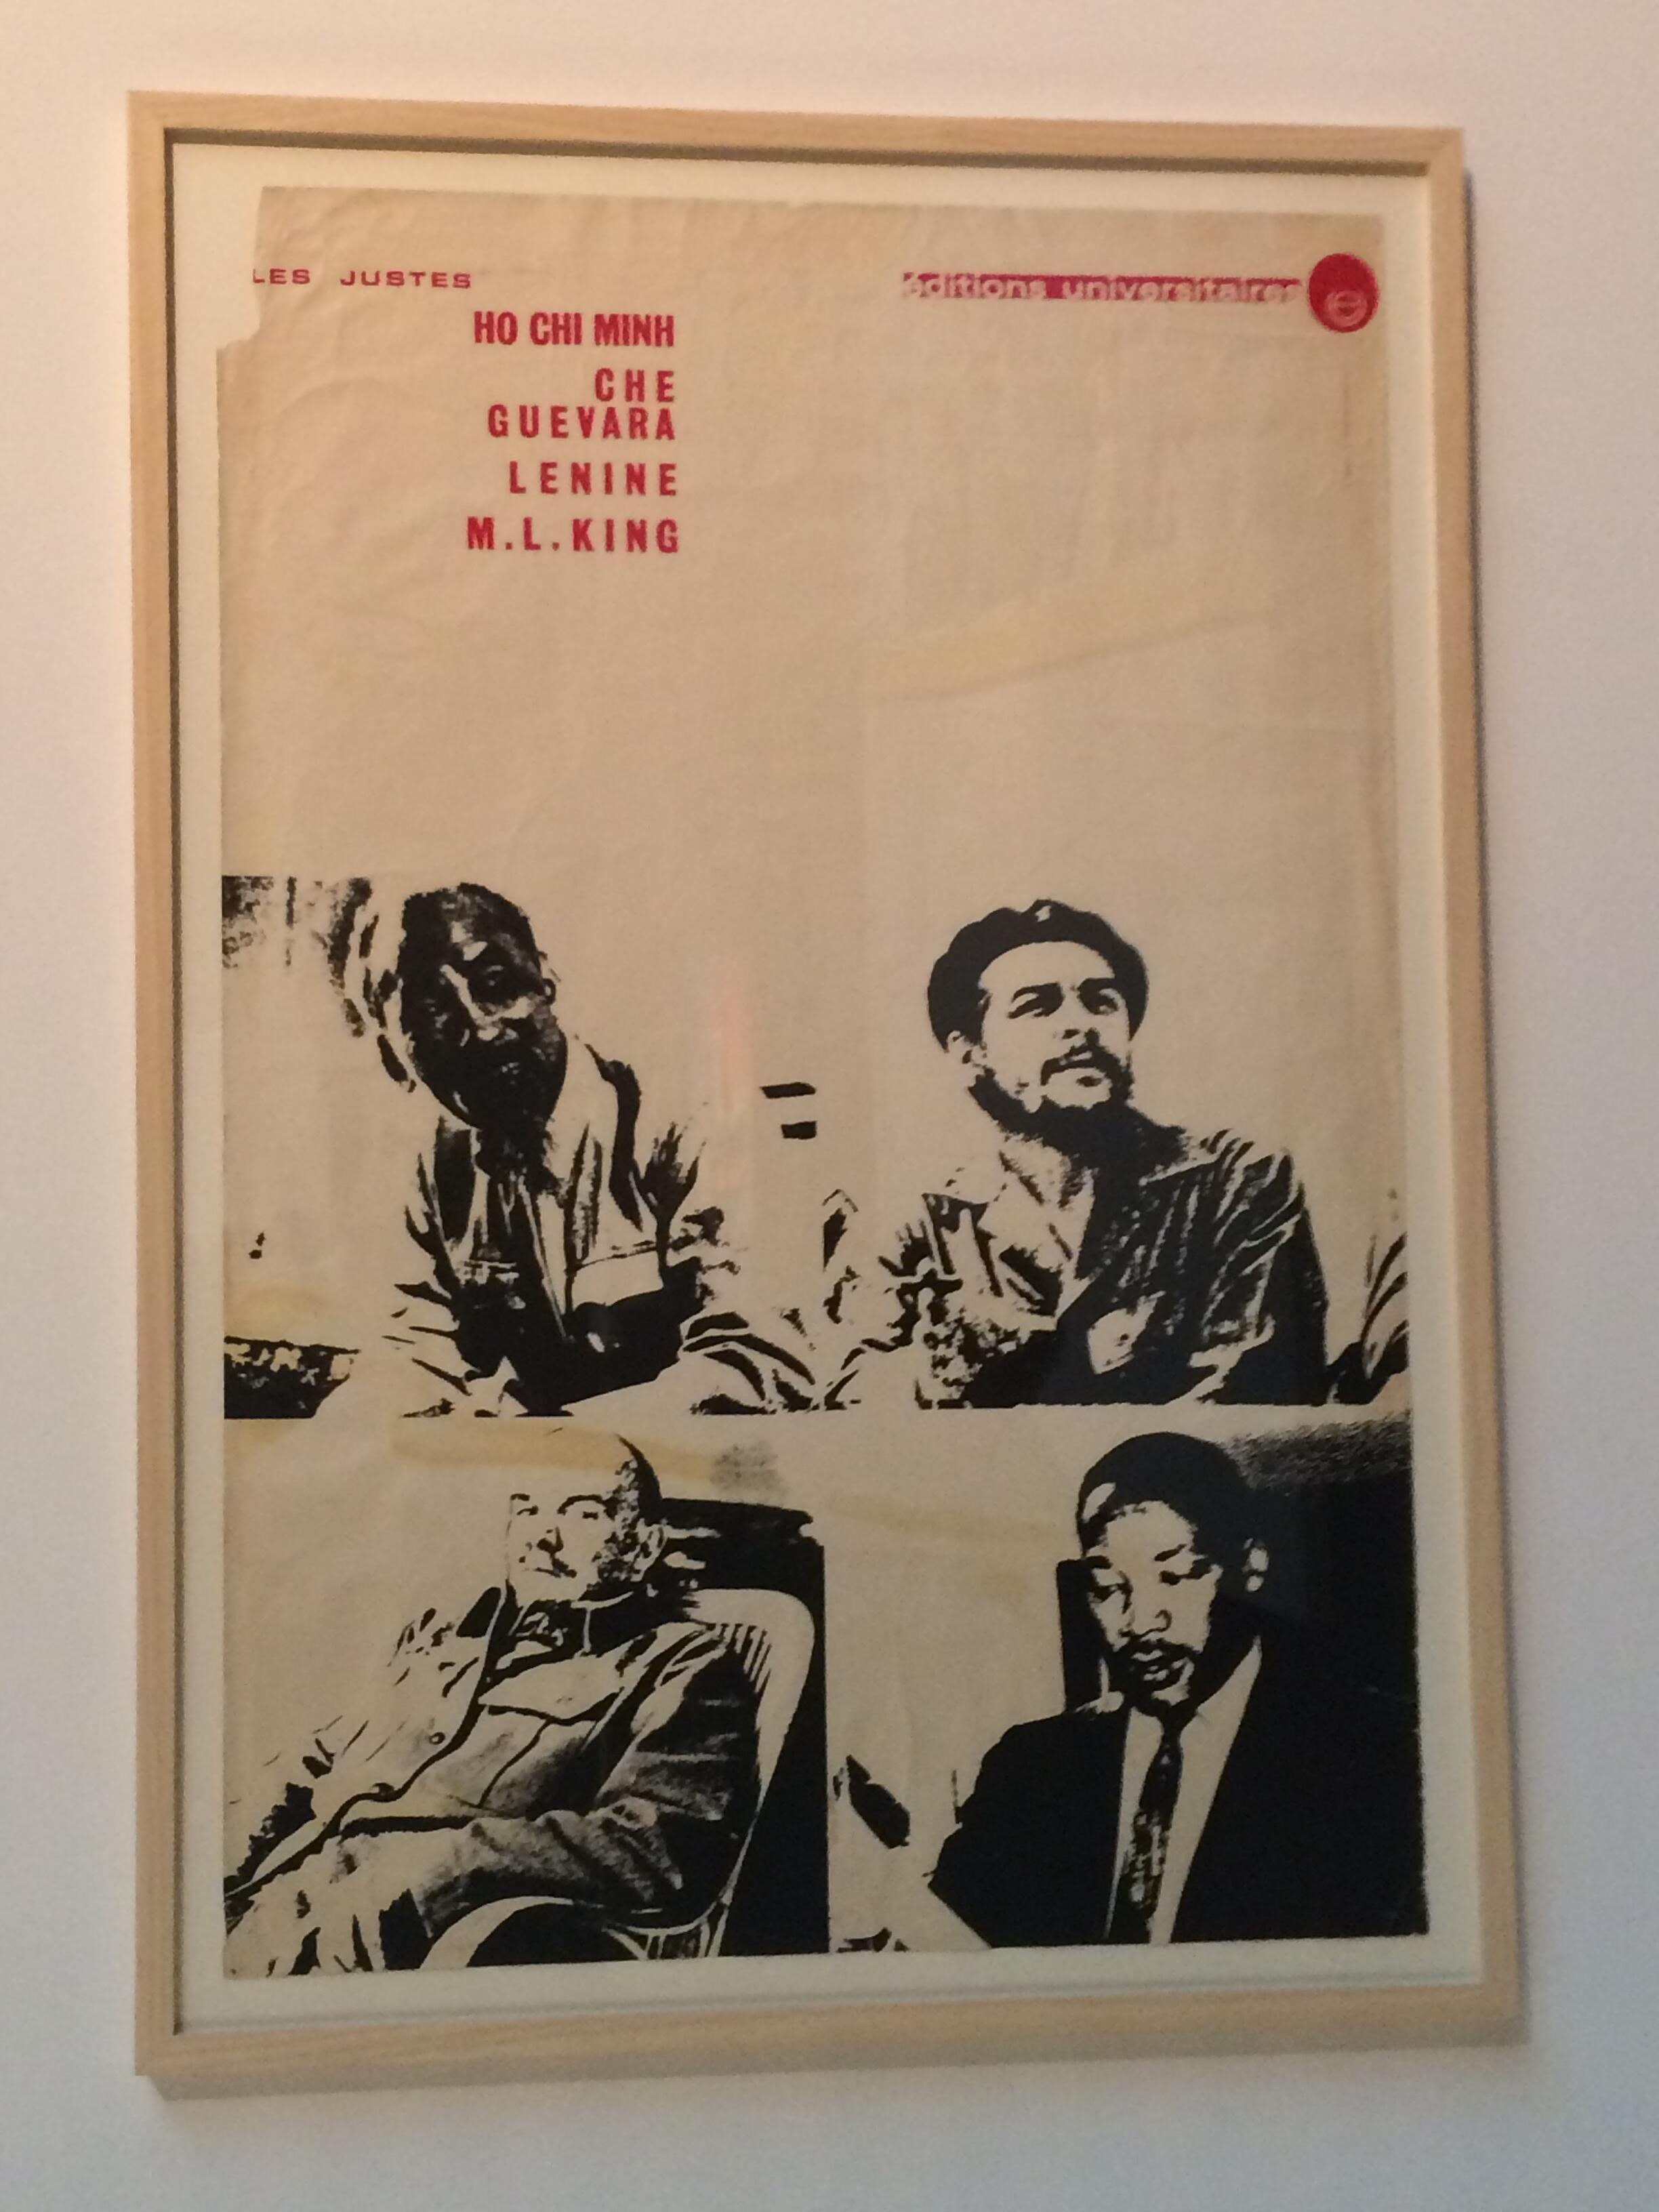 """""""Les Justes"""" by Maoist artist Pierre Buraglio, member of Atelier Populaire, with Che Guevara, Martin Luther King, Ho Chi Minh and Lenine"""